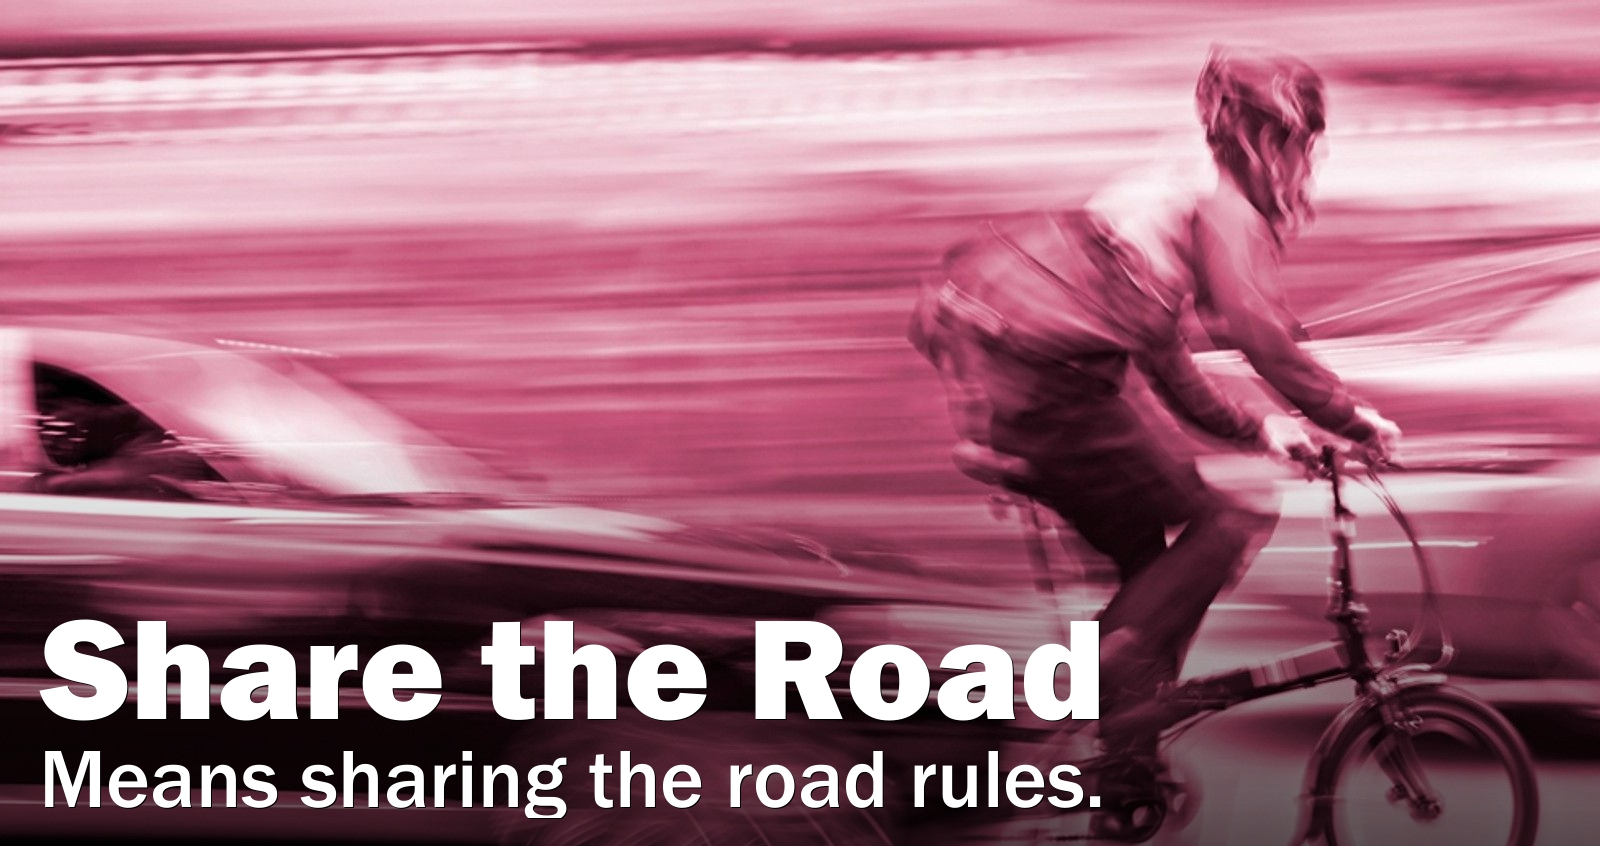 Share the road means sharing the road rules